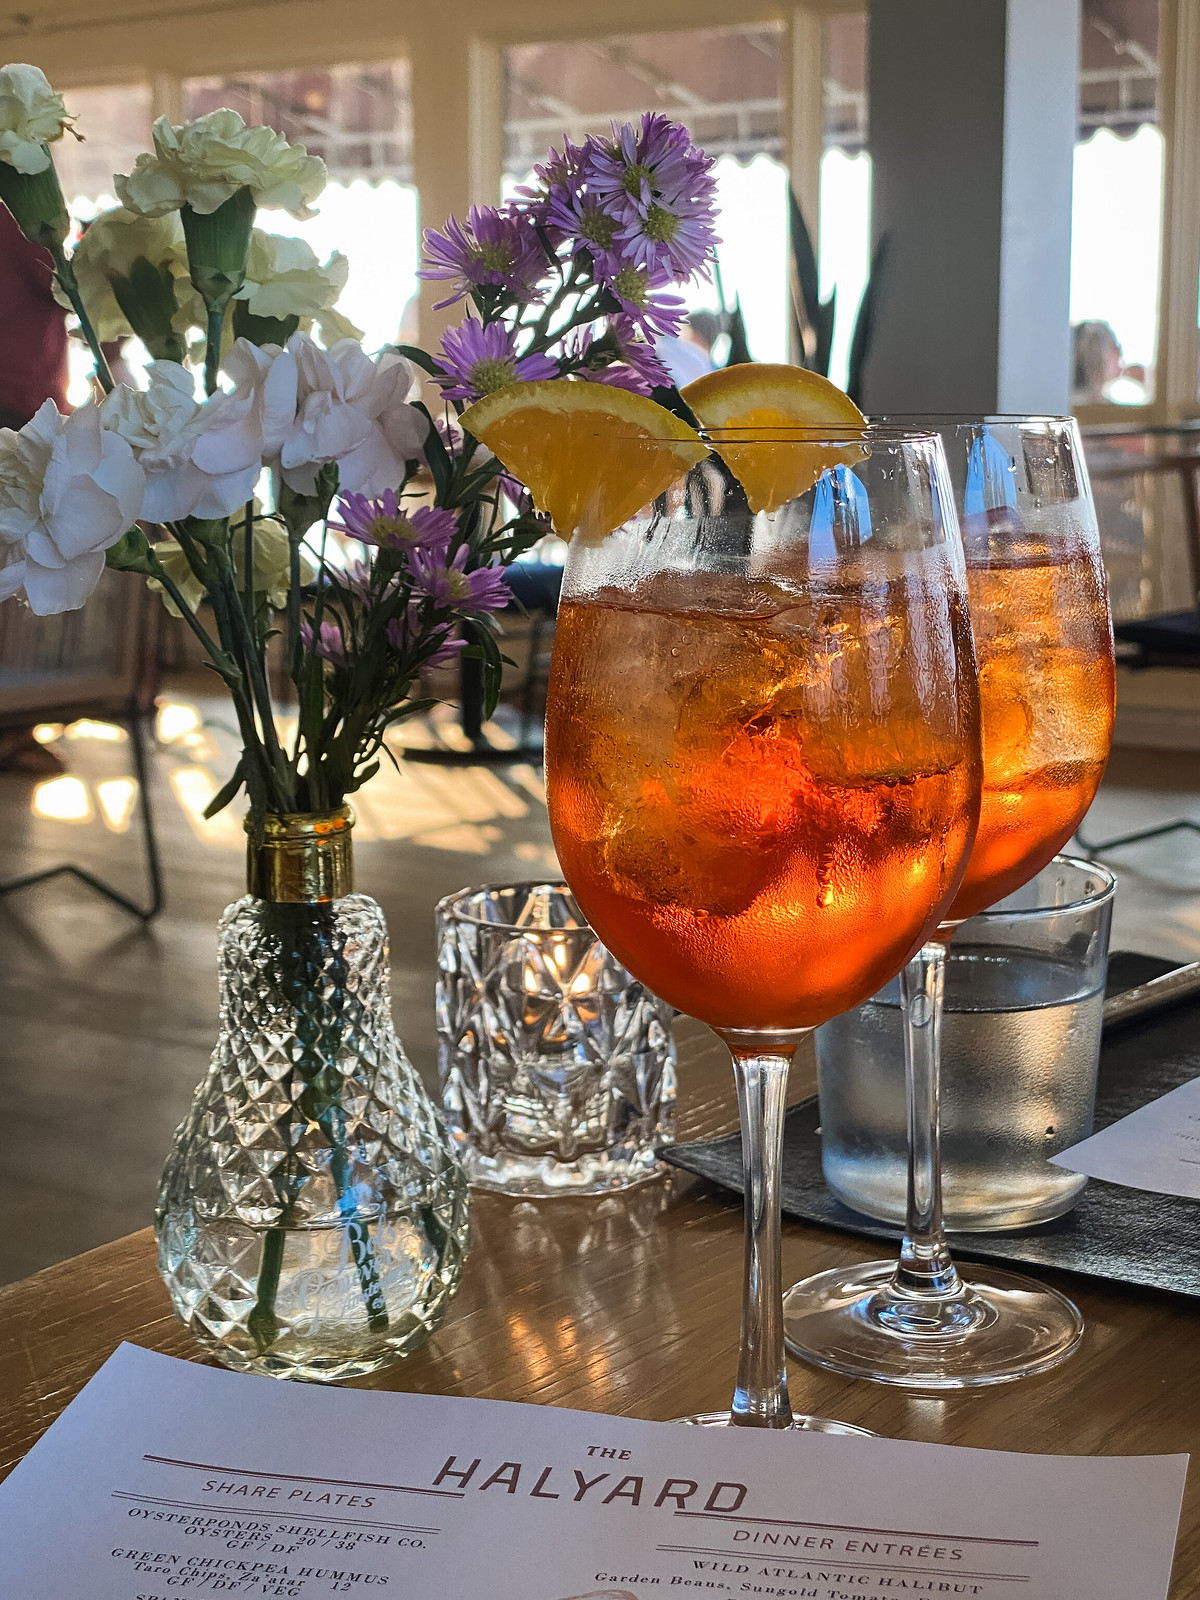 Halyard Restaurant   Aperol Spritz   Where to Eat in the North Fork, Long Island, NY   Best Restaurants on the North Fork   48 Hours on the North Fork, Long Island   The Perfect Weekend Itinerary   Best Things to Do on The North Fork   Explore Long Island New York   Weekend in North Fork, LI   North Fork, Long Island Travel Guide   Weekend Trip Out East   2 Days in the North Fork   Top Things to do in Long Island